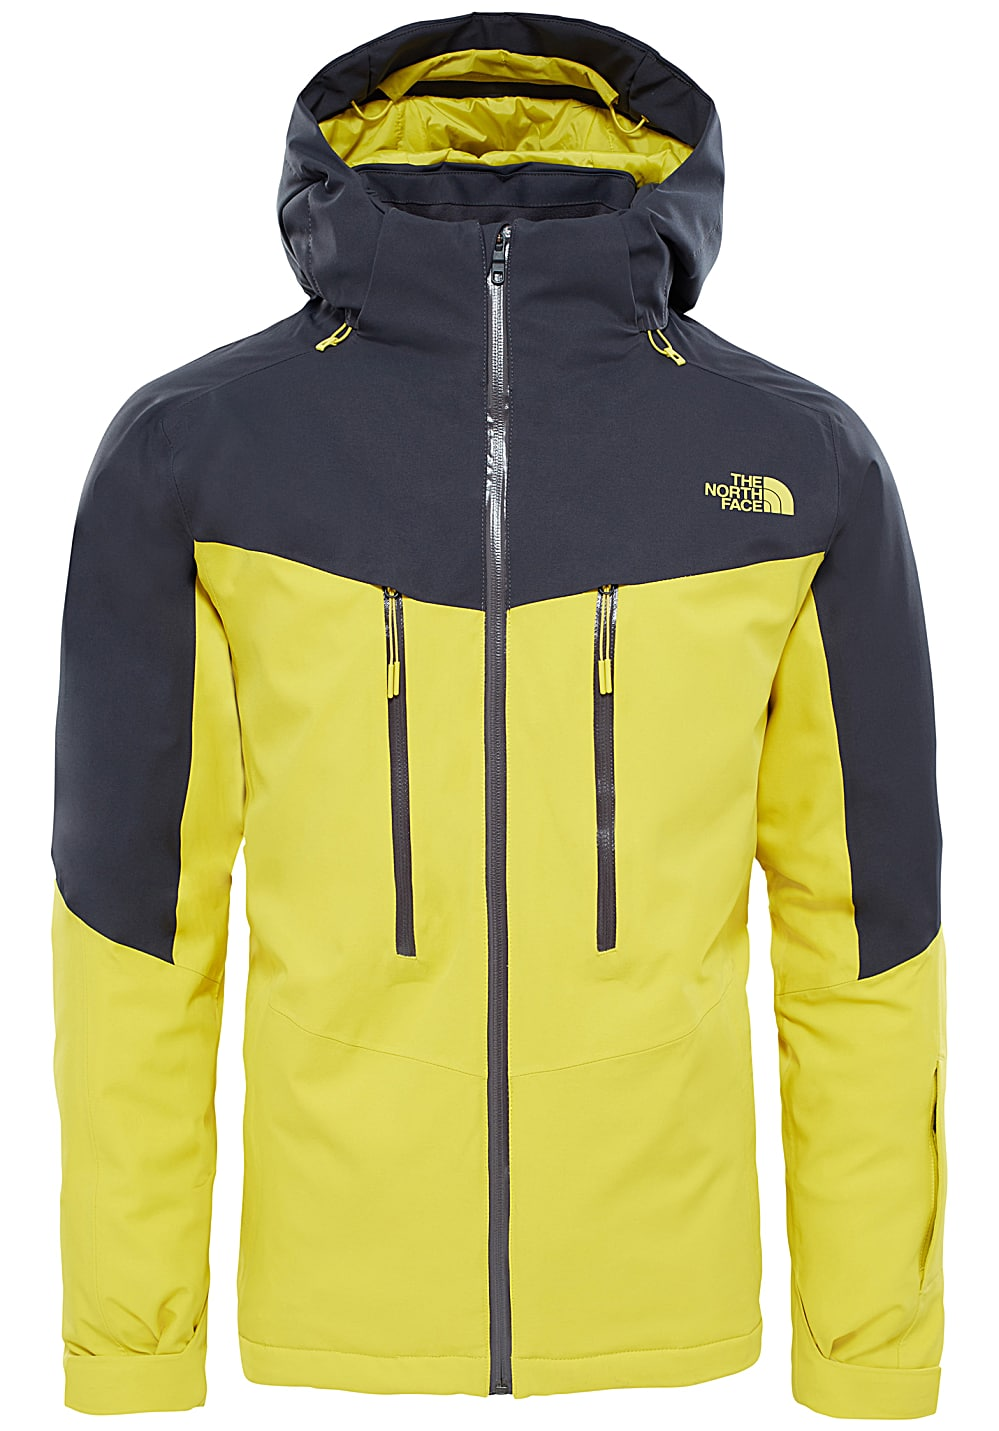 THE NORTH FACE Chakal Outdoorjacke für Herren Gelb